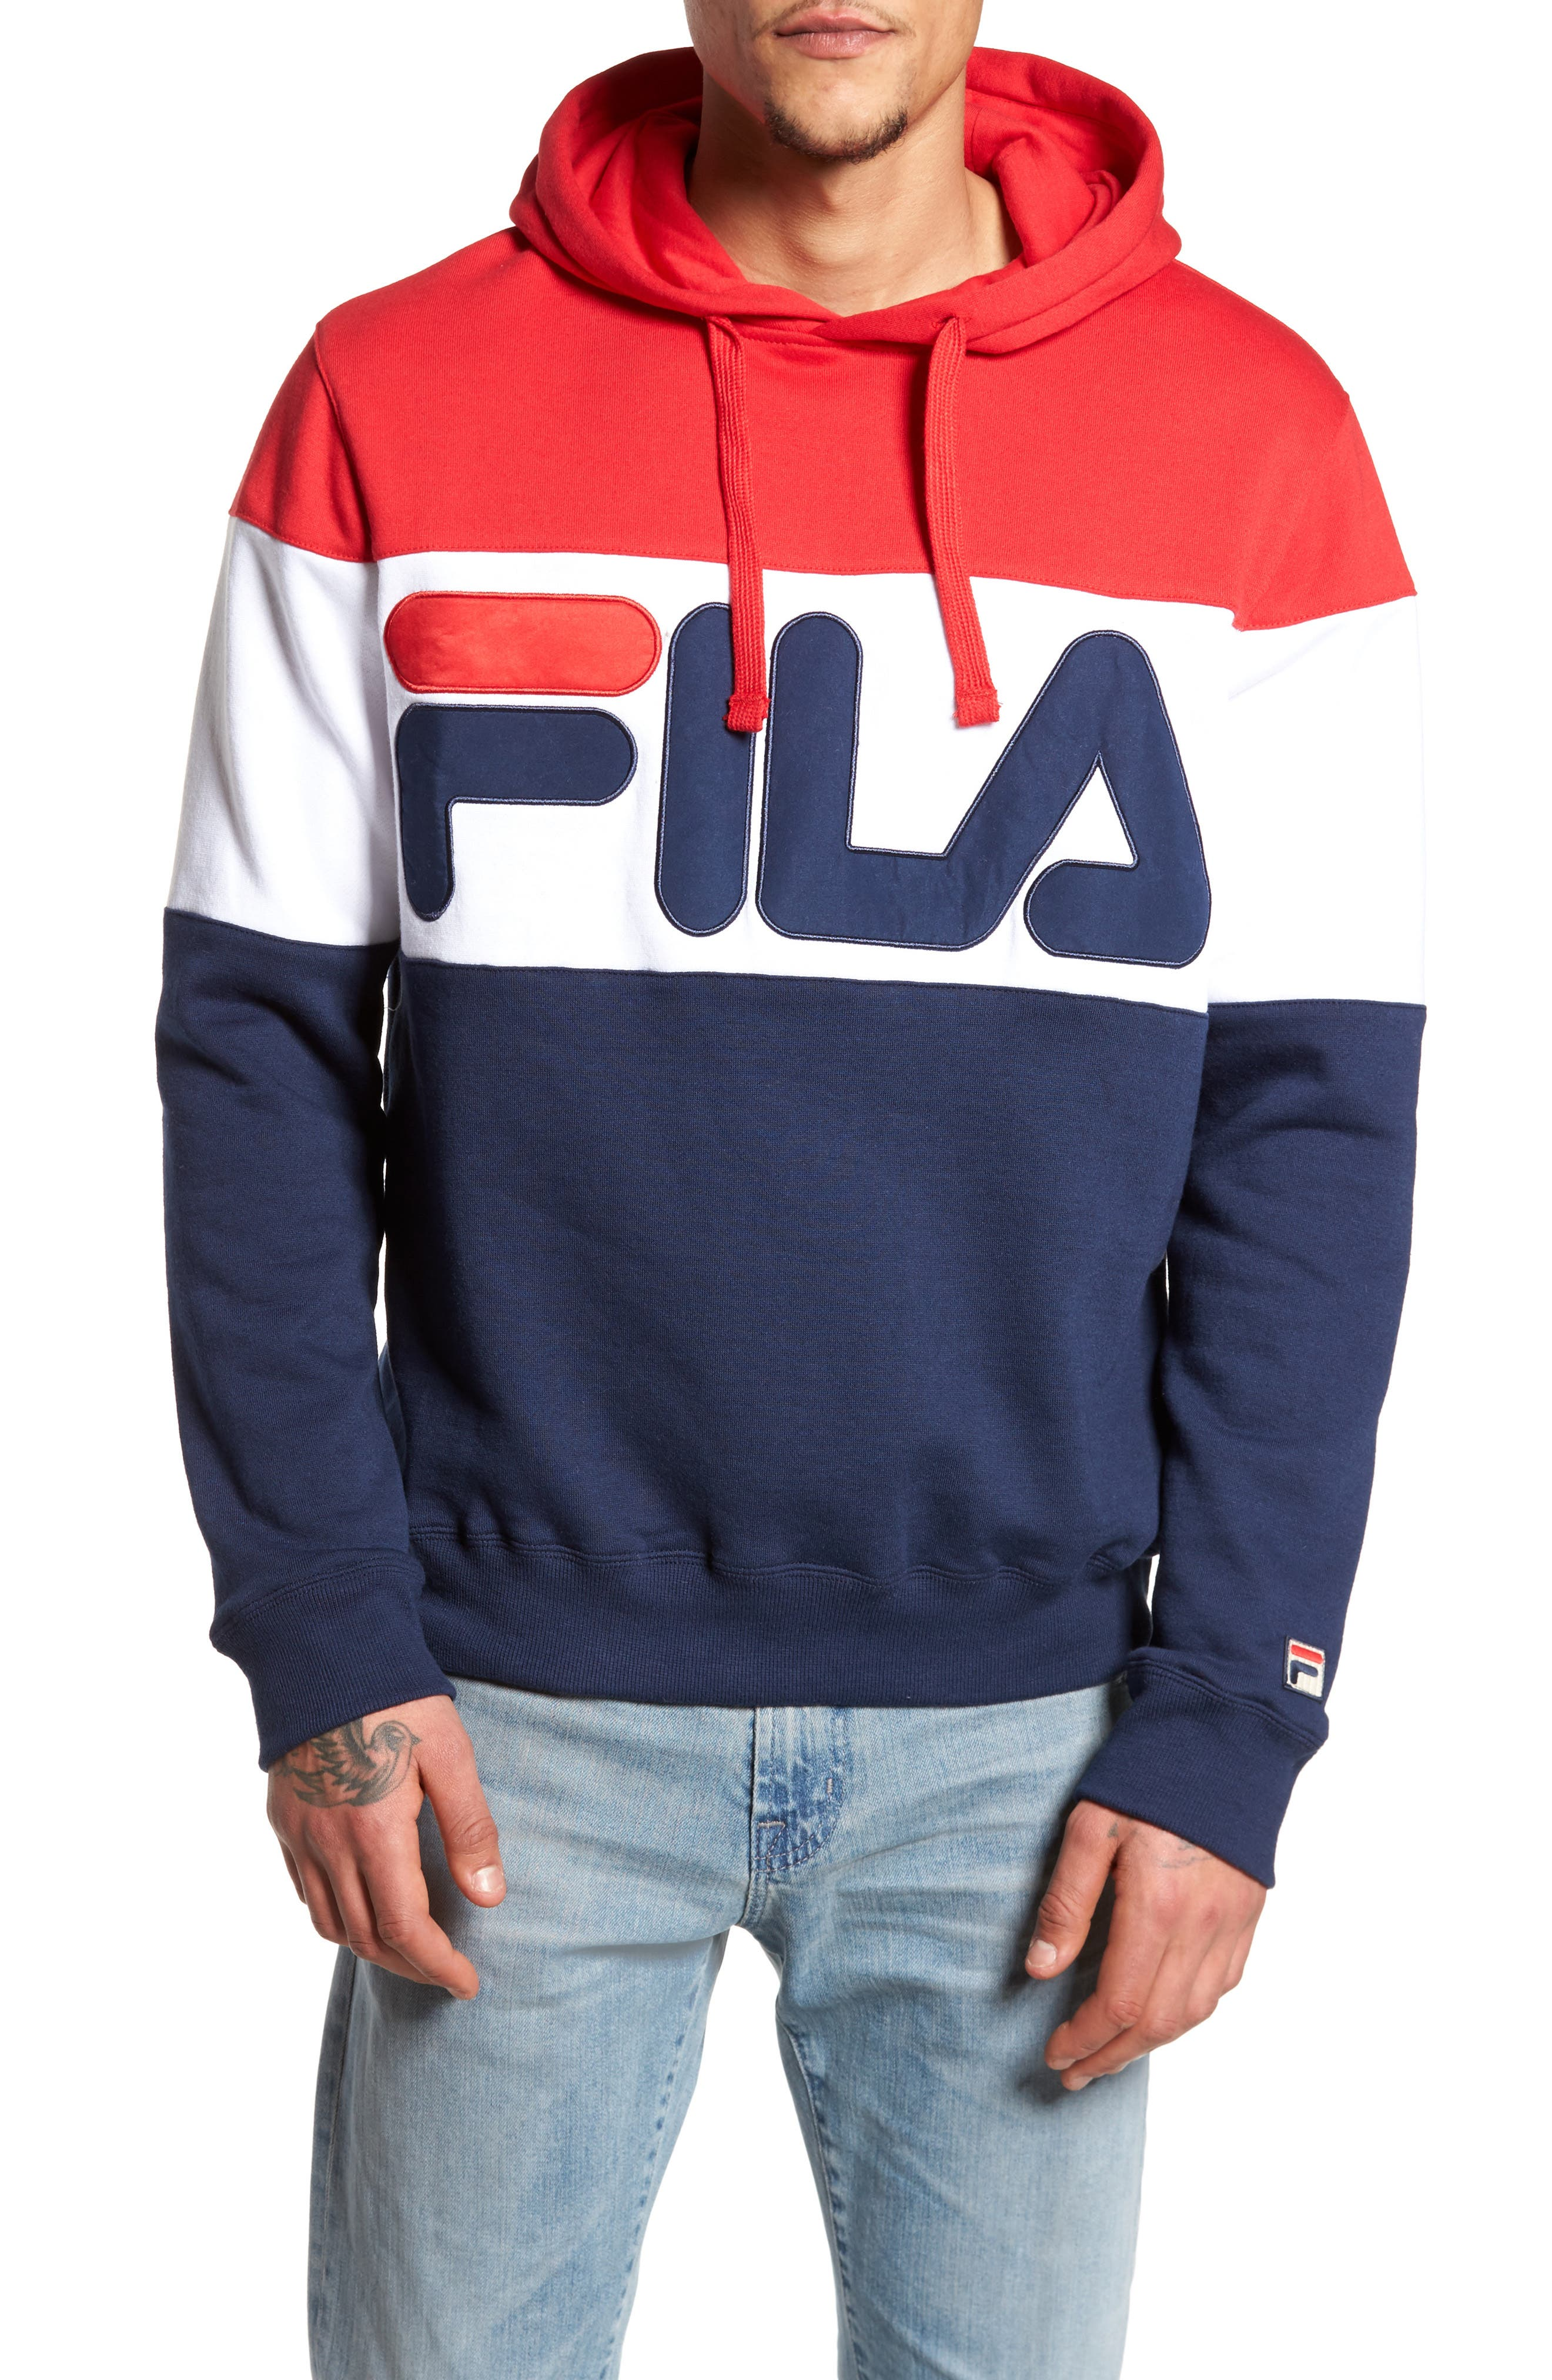 Trayton Hoodie,                             Main thumbnail 1, color,                             Chinese Red/ White/ Navy